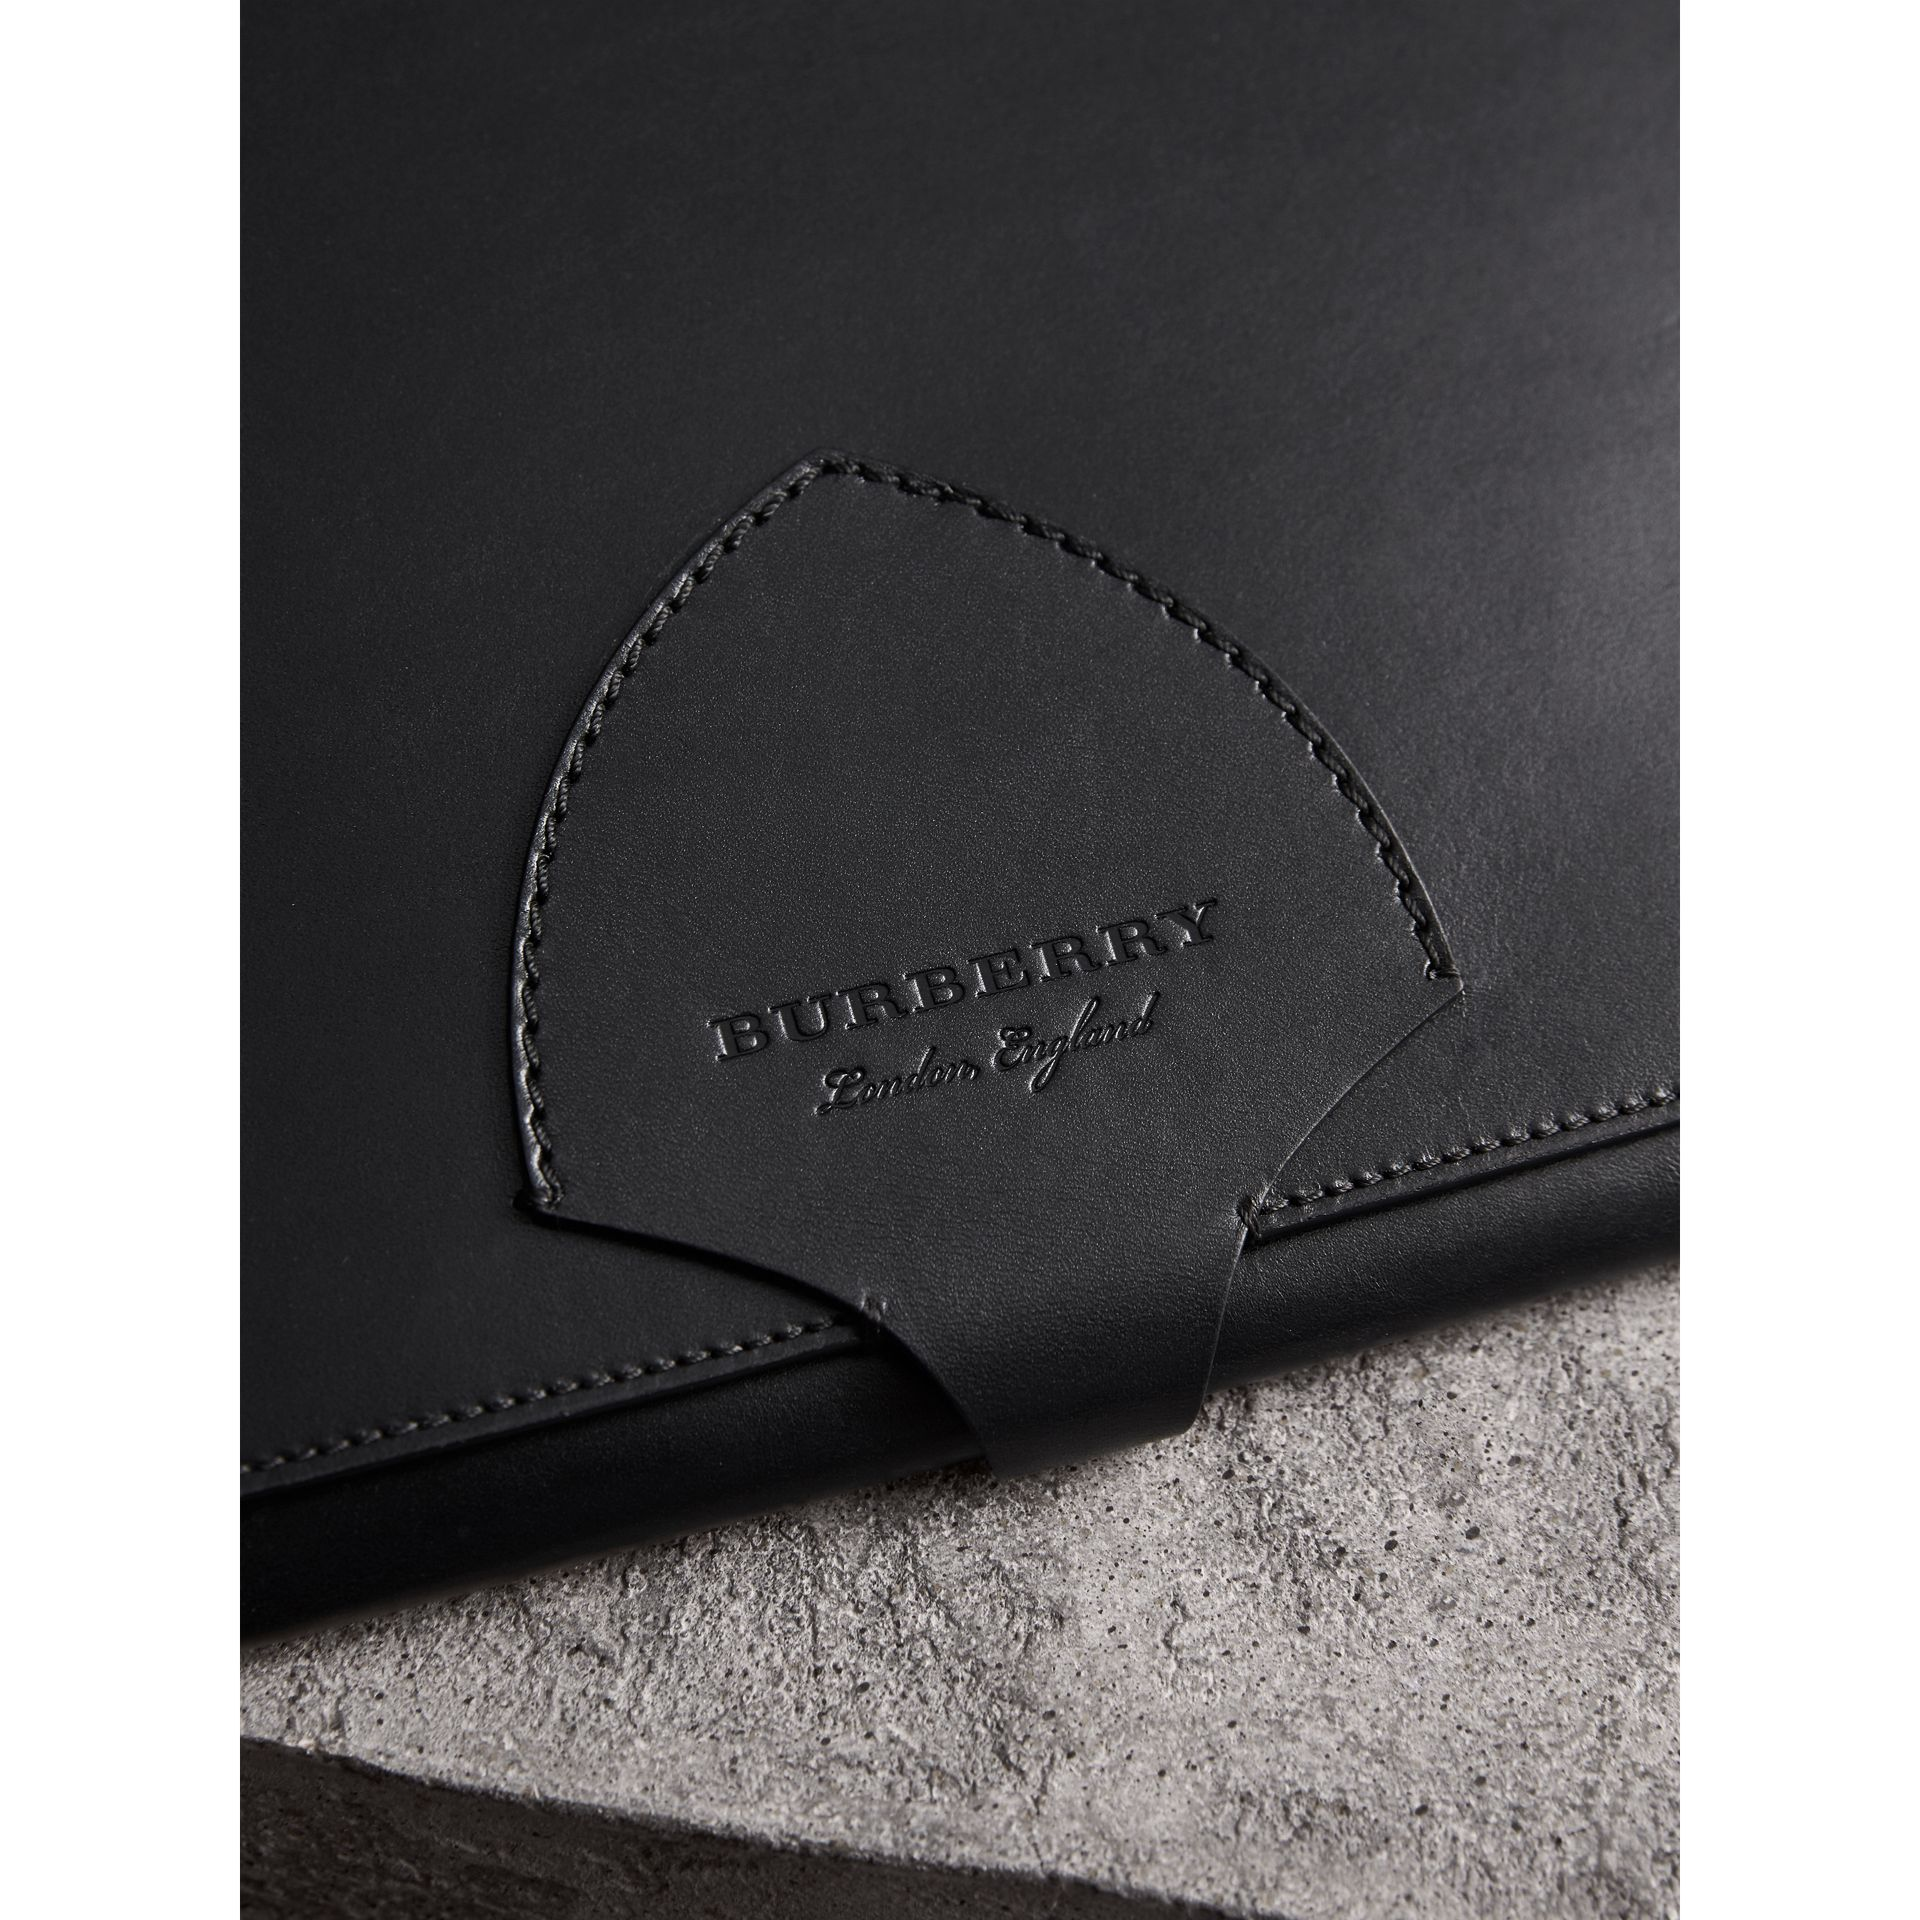 Burberry Black Equestrian Shield Leather A4 Document Case